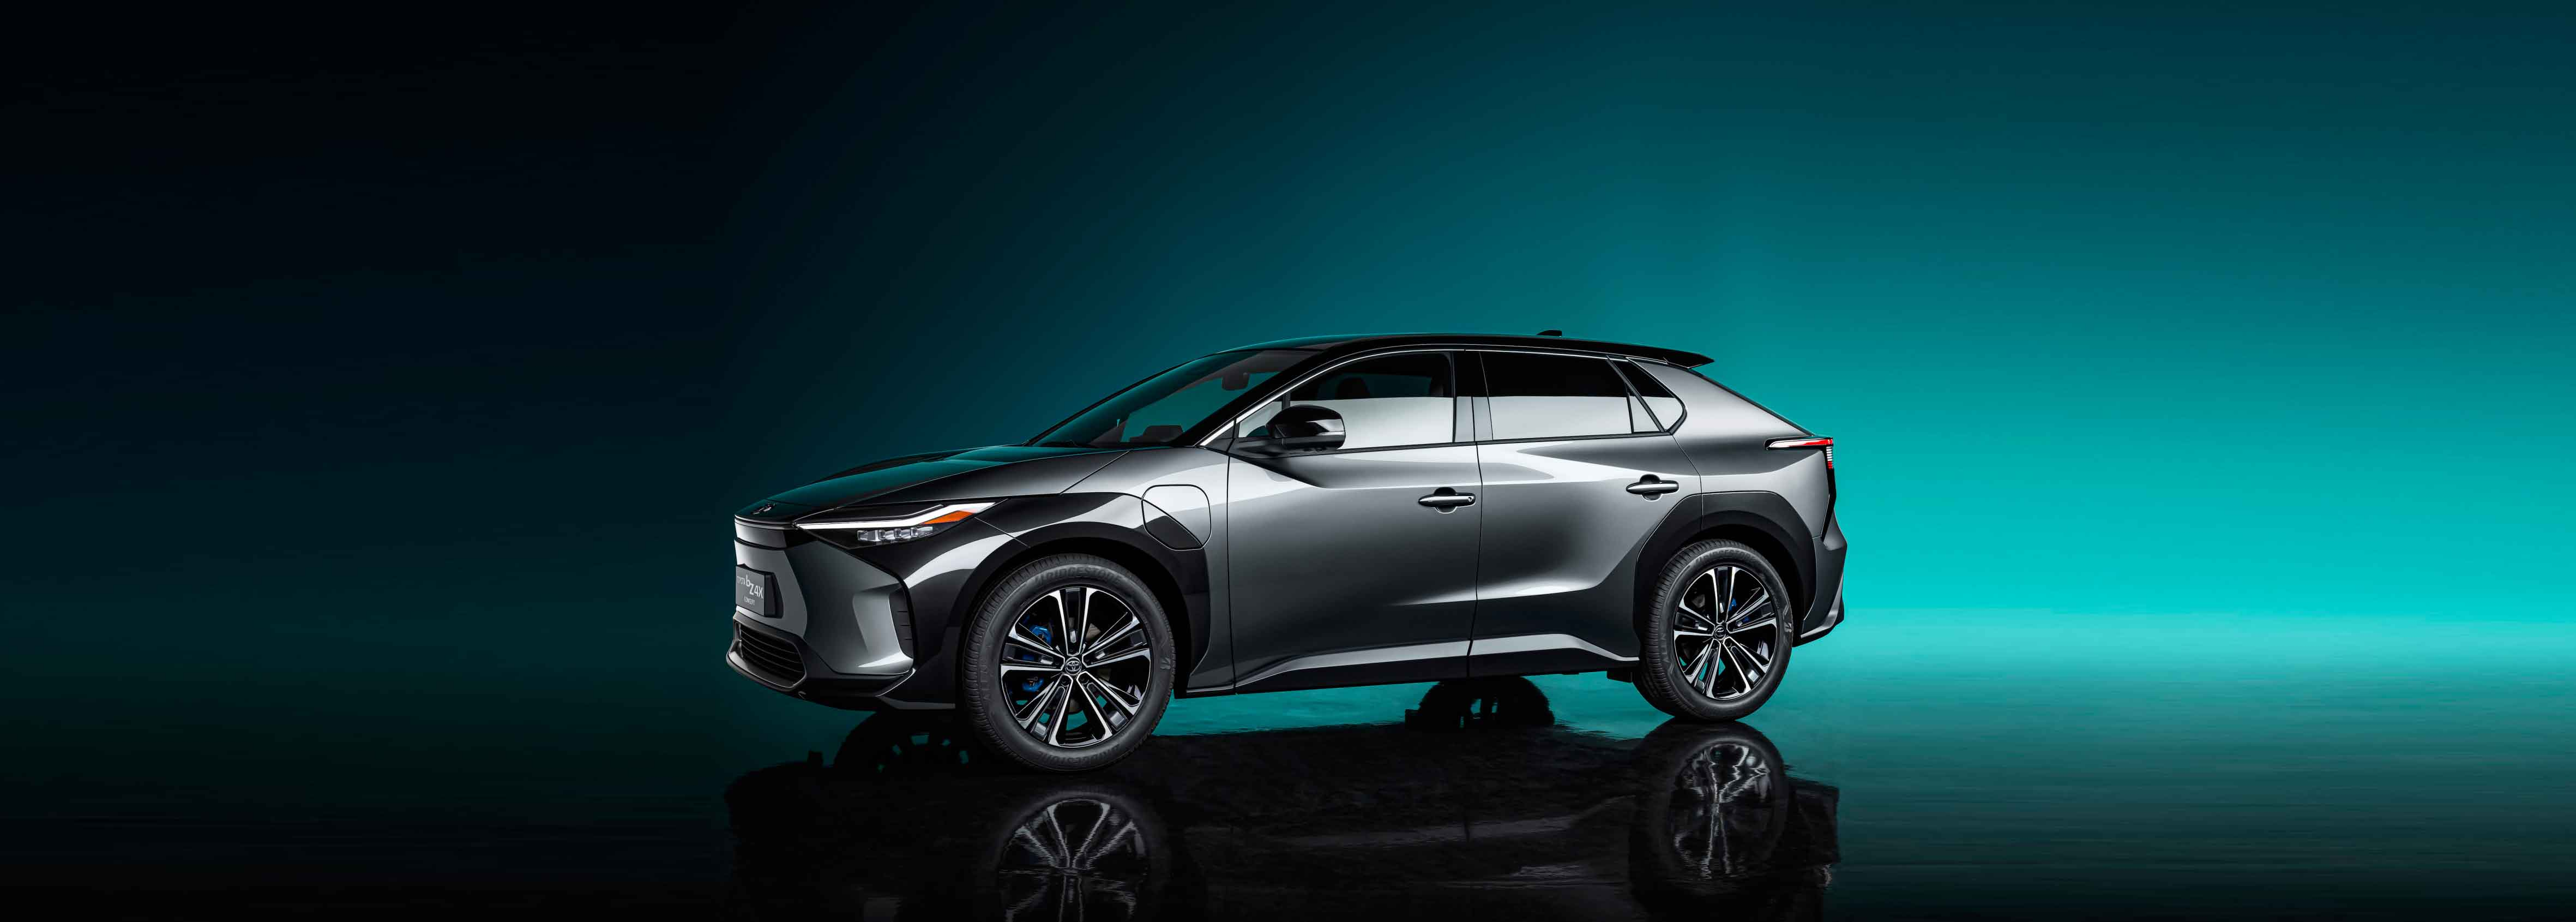 Toyota bZ4X offers a glimpse into the future